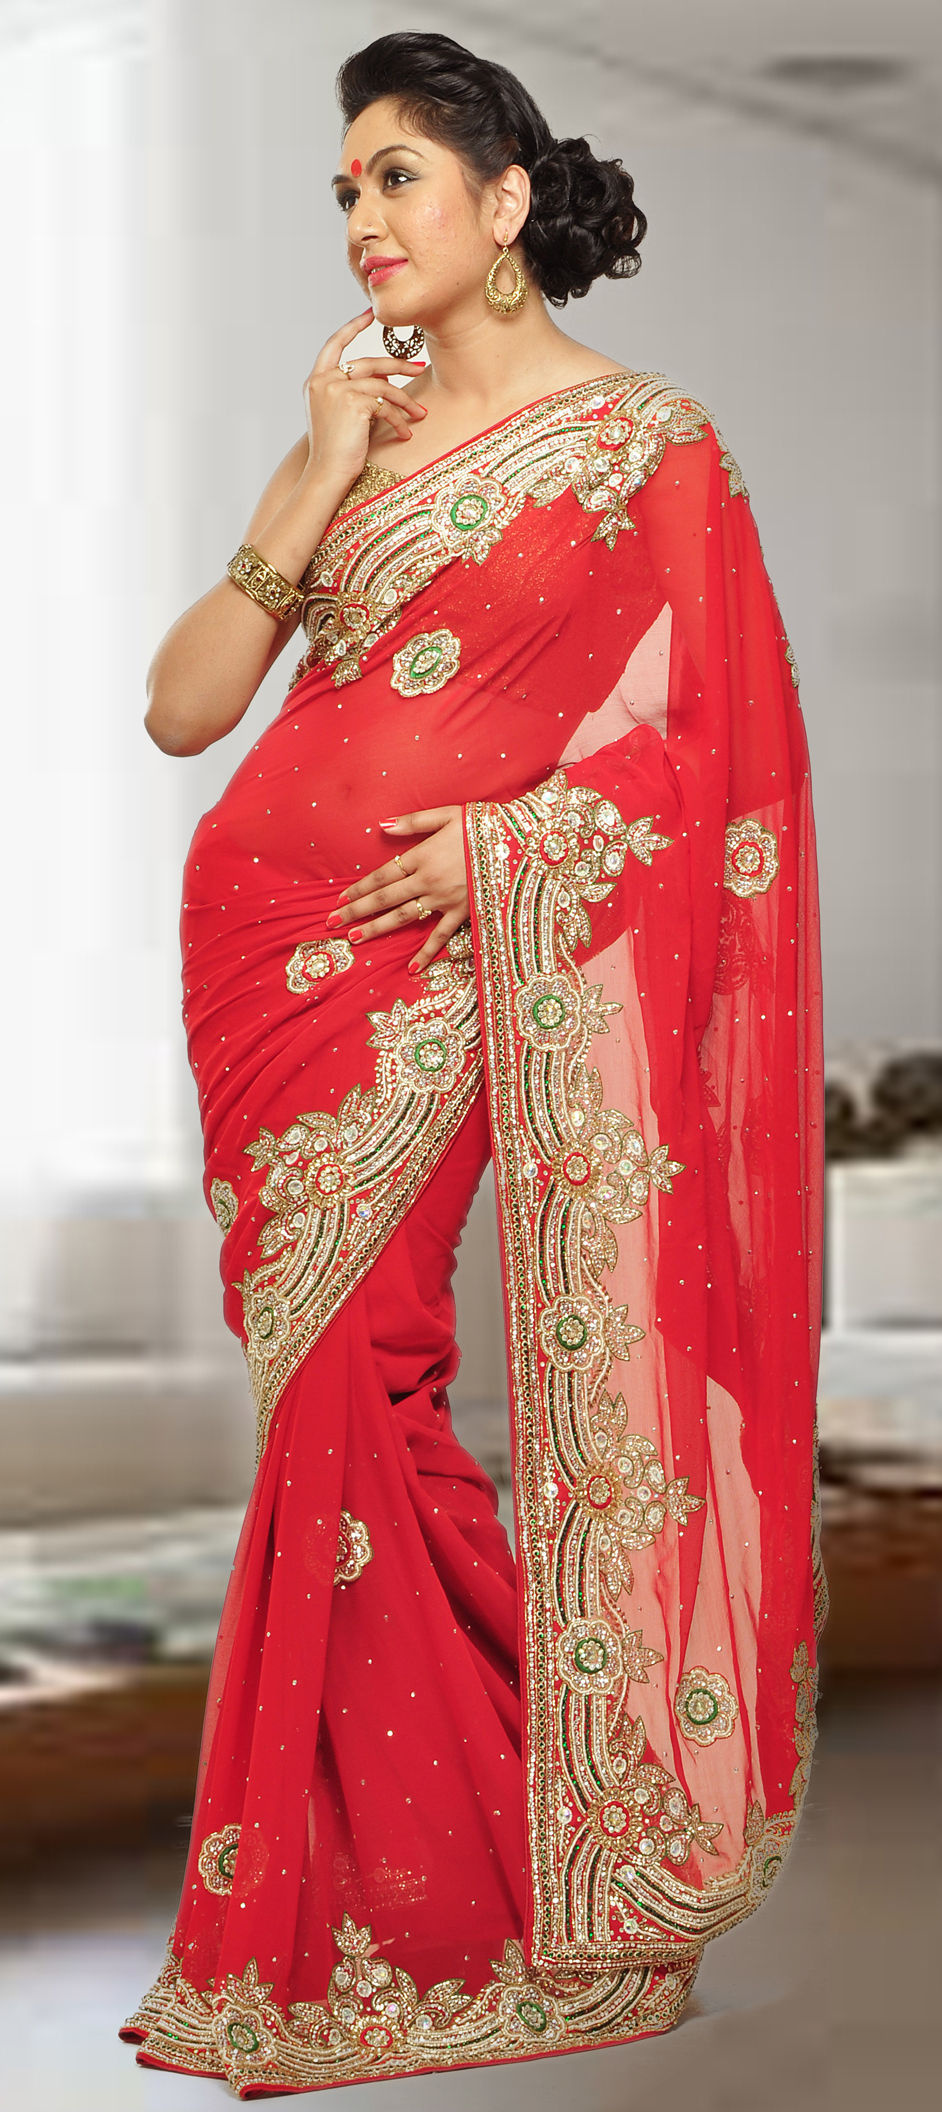 b0a4eb5429c 174707  Red and Maroon color family Bridal Wedding Sarees